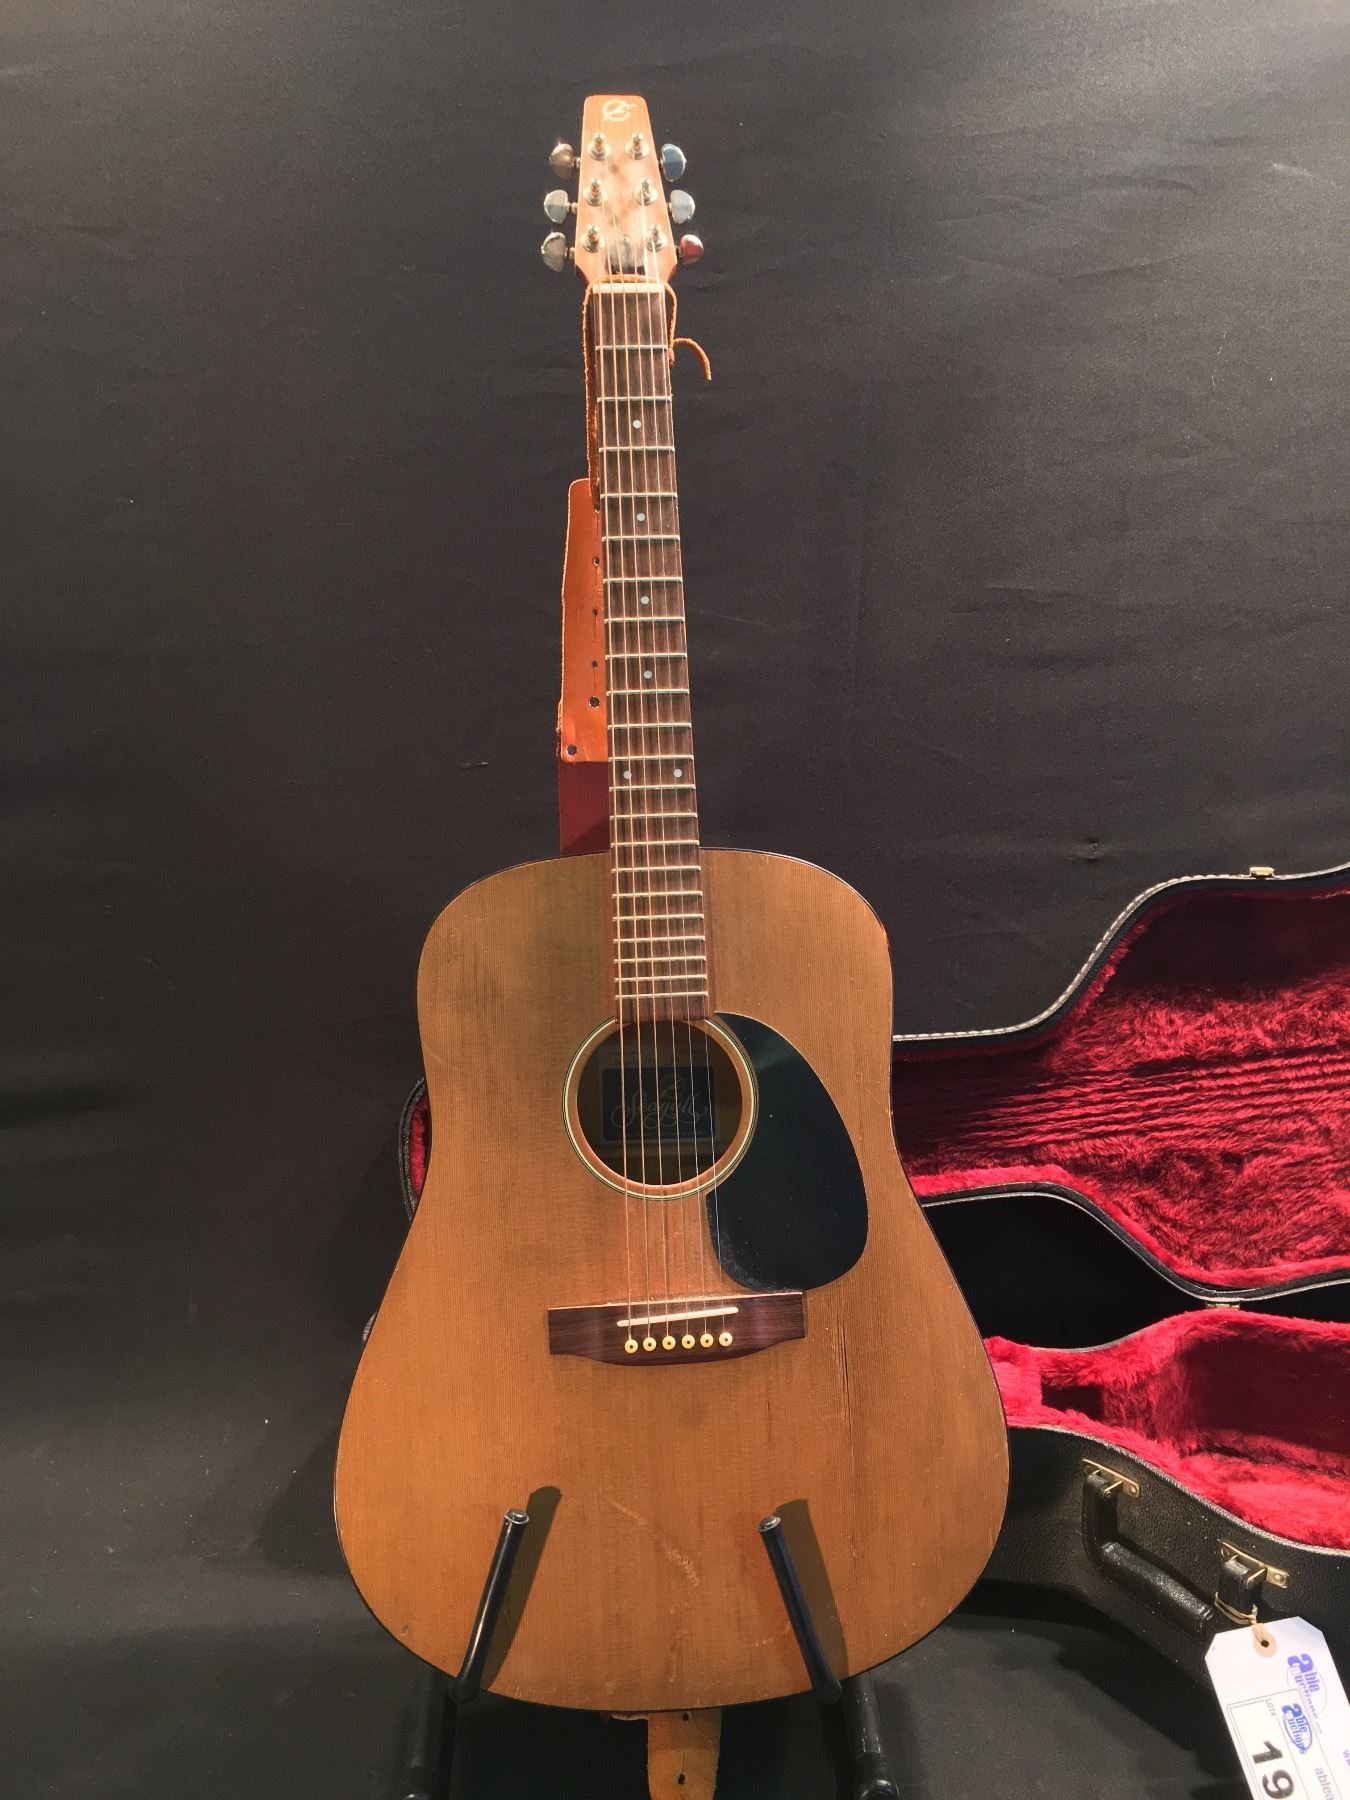 dd63a368ca Image 1 : SEAGULL MODEL 6 ACOUSTIC GUITAR, SERIAL NUMBER 15401, HANDMADE IN  CANADA ...